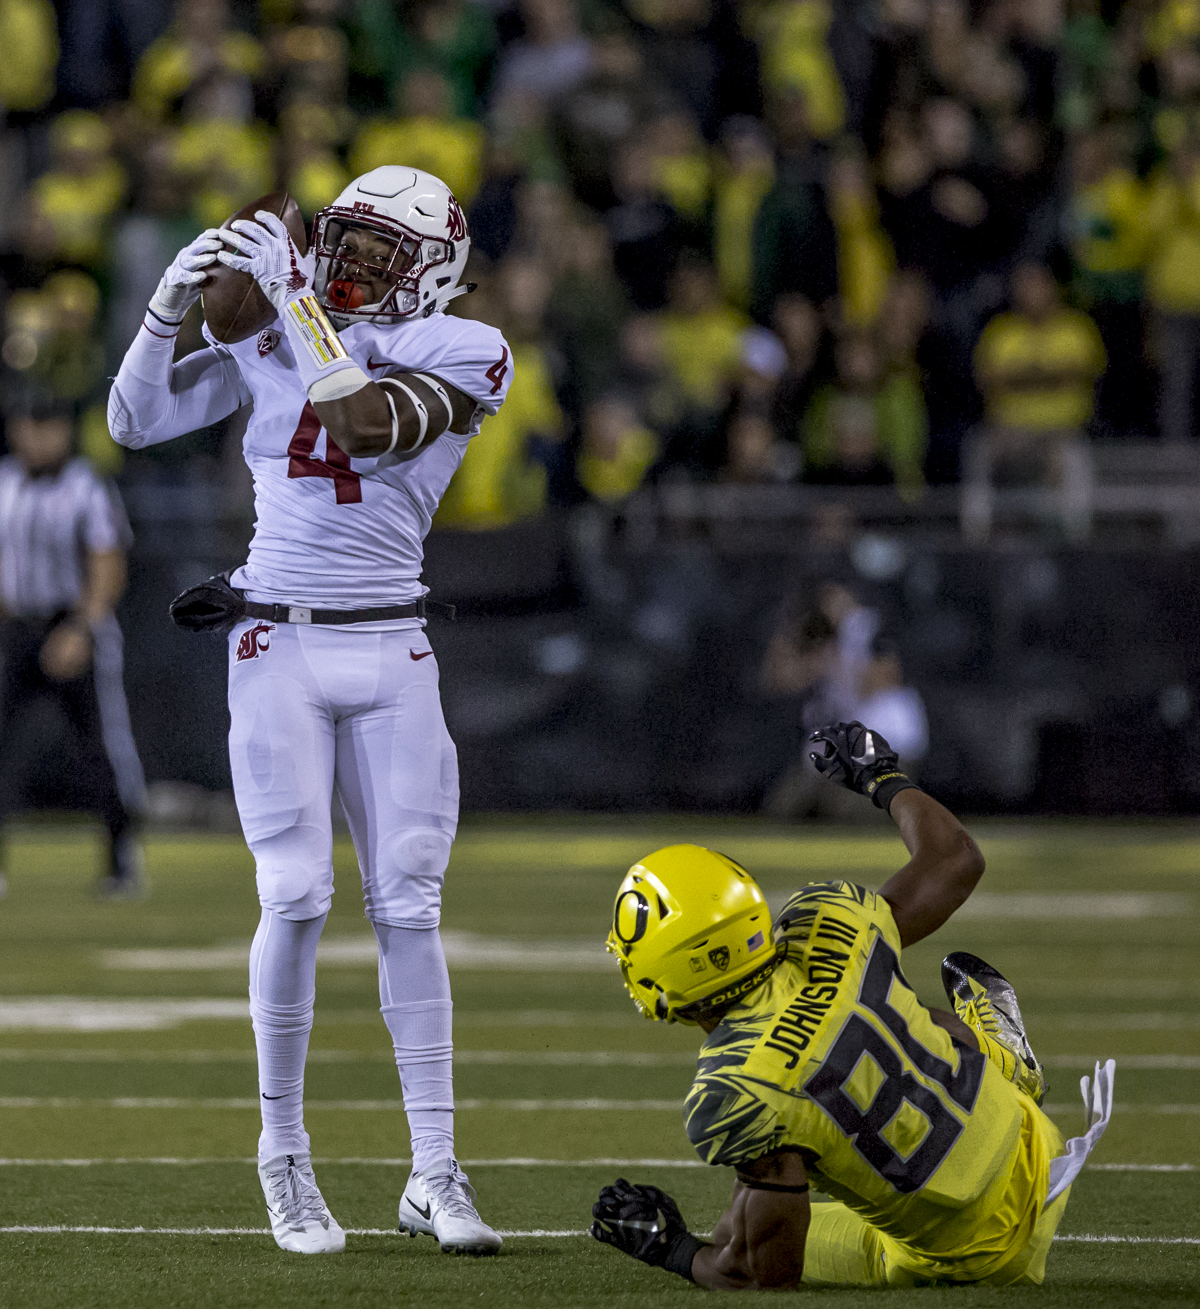 Washington State center back Thomas Graham Jr. (#4) intercepts a pass intended for Oregon wide receiver Johnny Johnson III (#80). The Washington State Cougars defeated the Oregon Ducks 33 to 10 on Saturday, October 7, 2017. Saturday's game was the first home loss for the Ducks under new head coach Willie Taggart. Photo by Ben Lonergan, Oregon News Lab